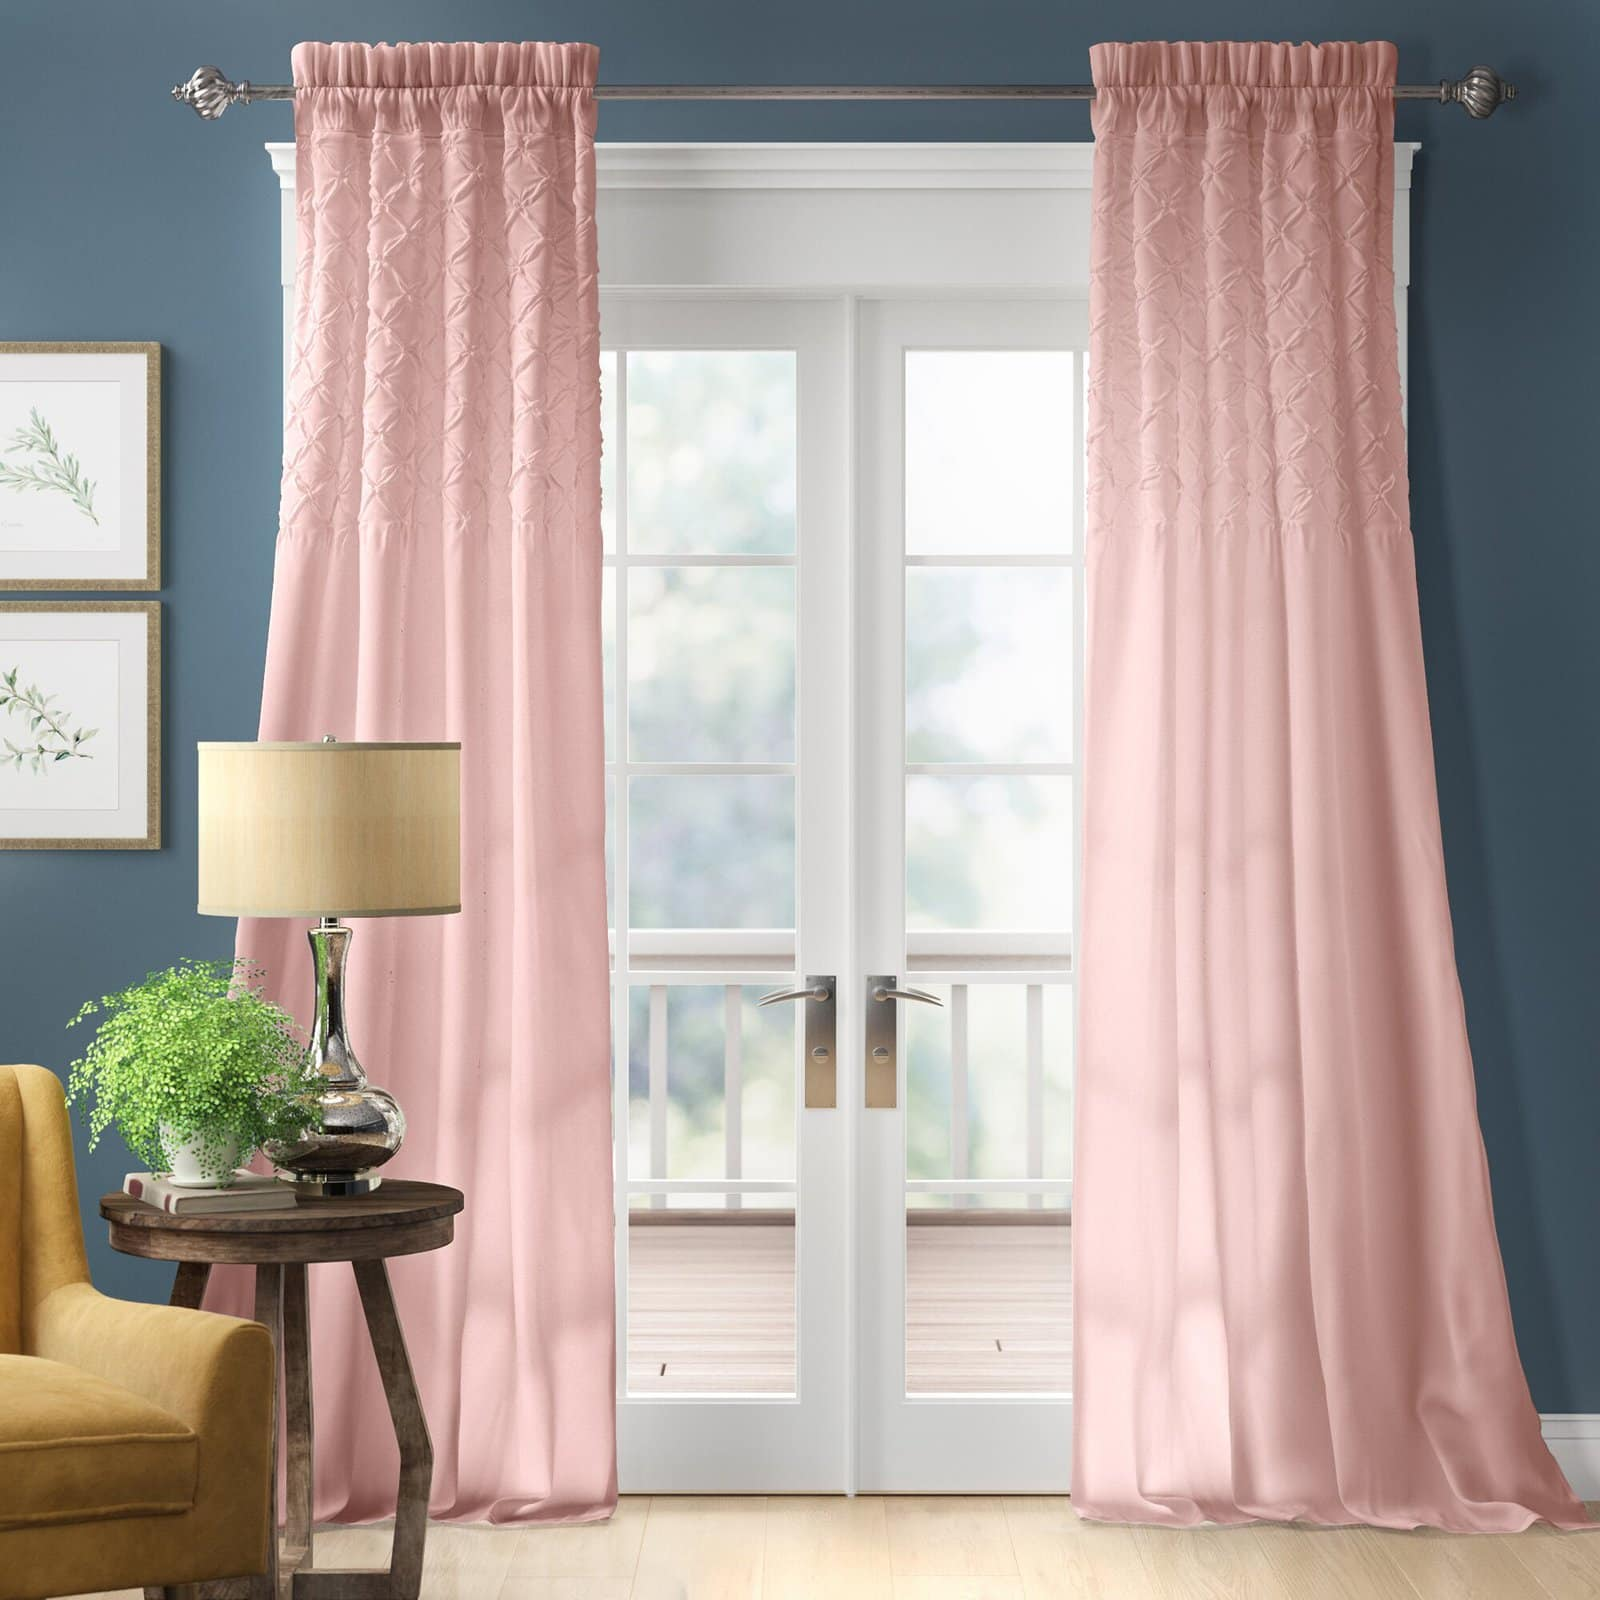 what color curtain goes with blue walls